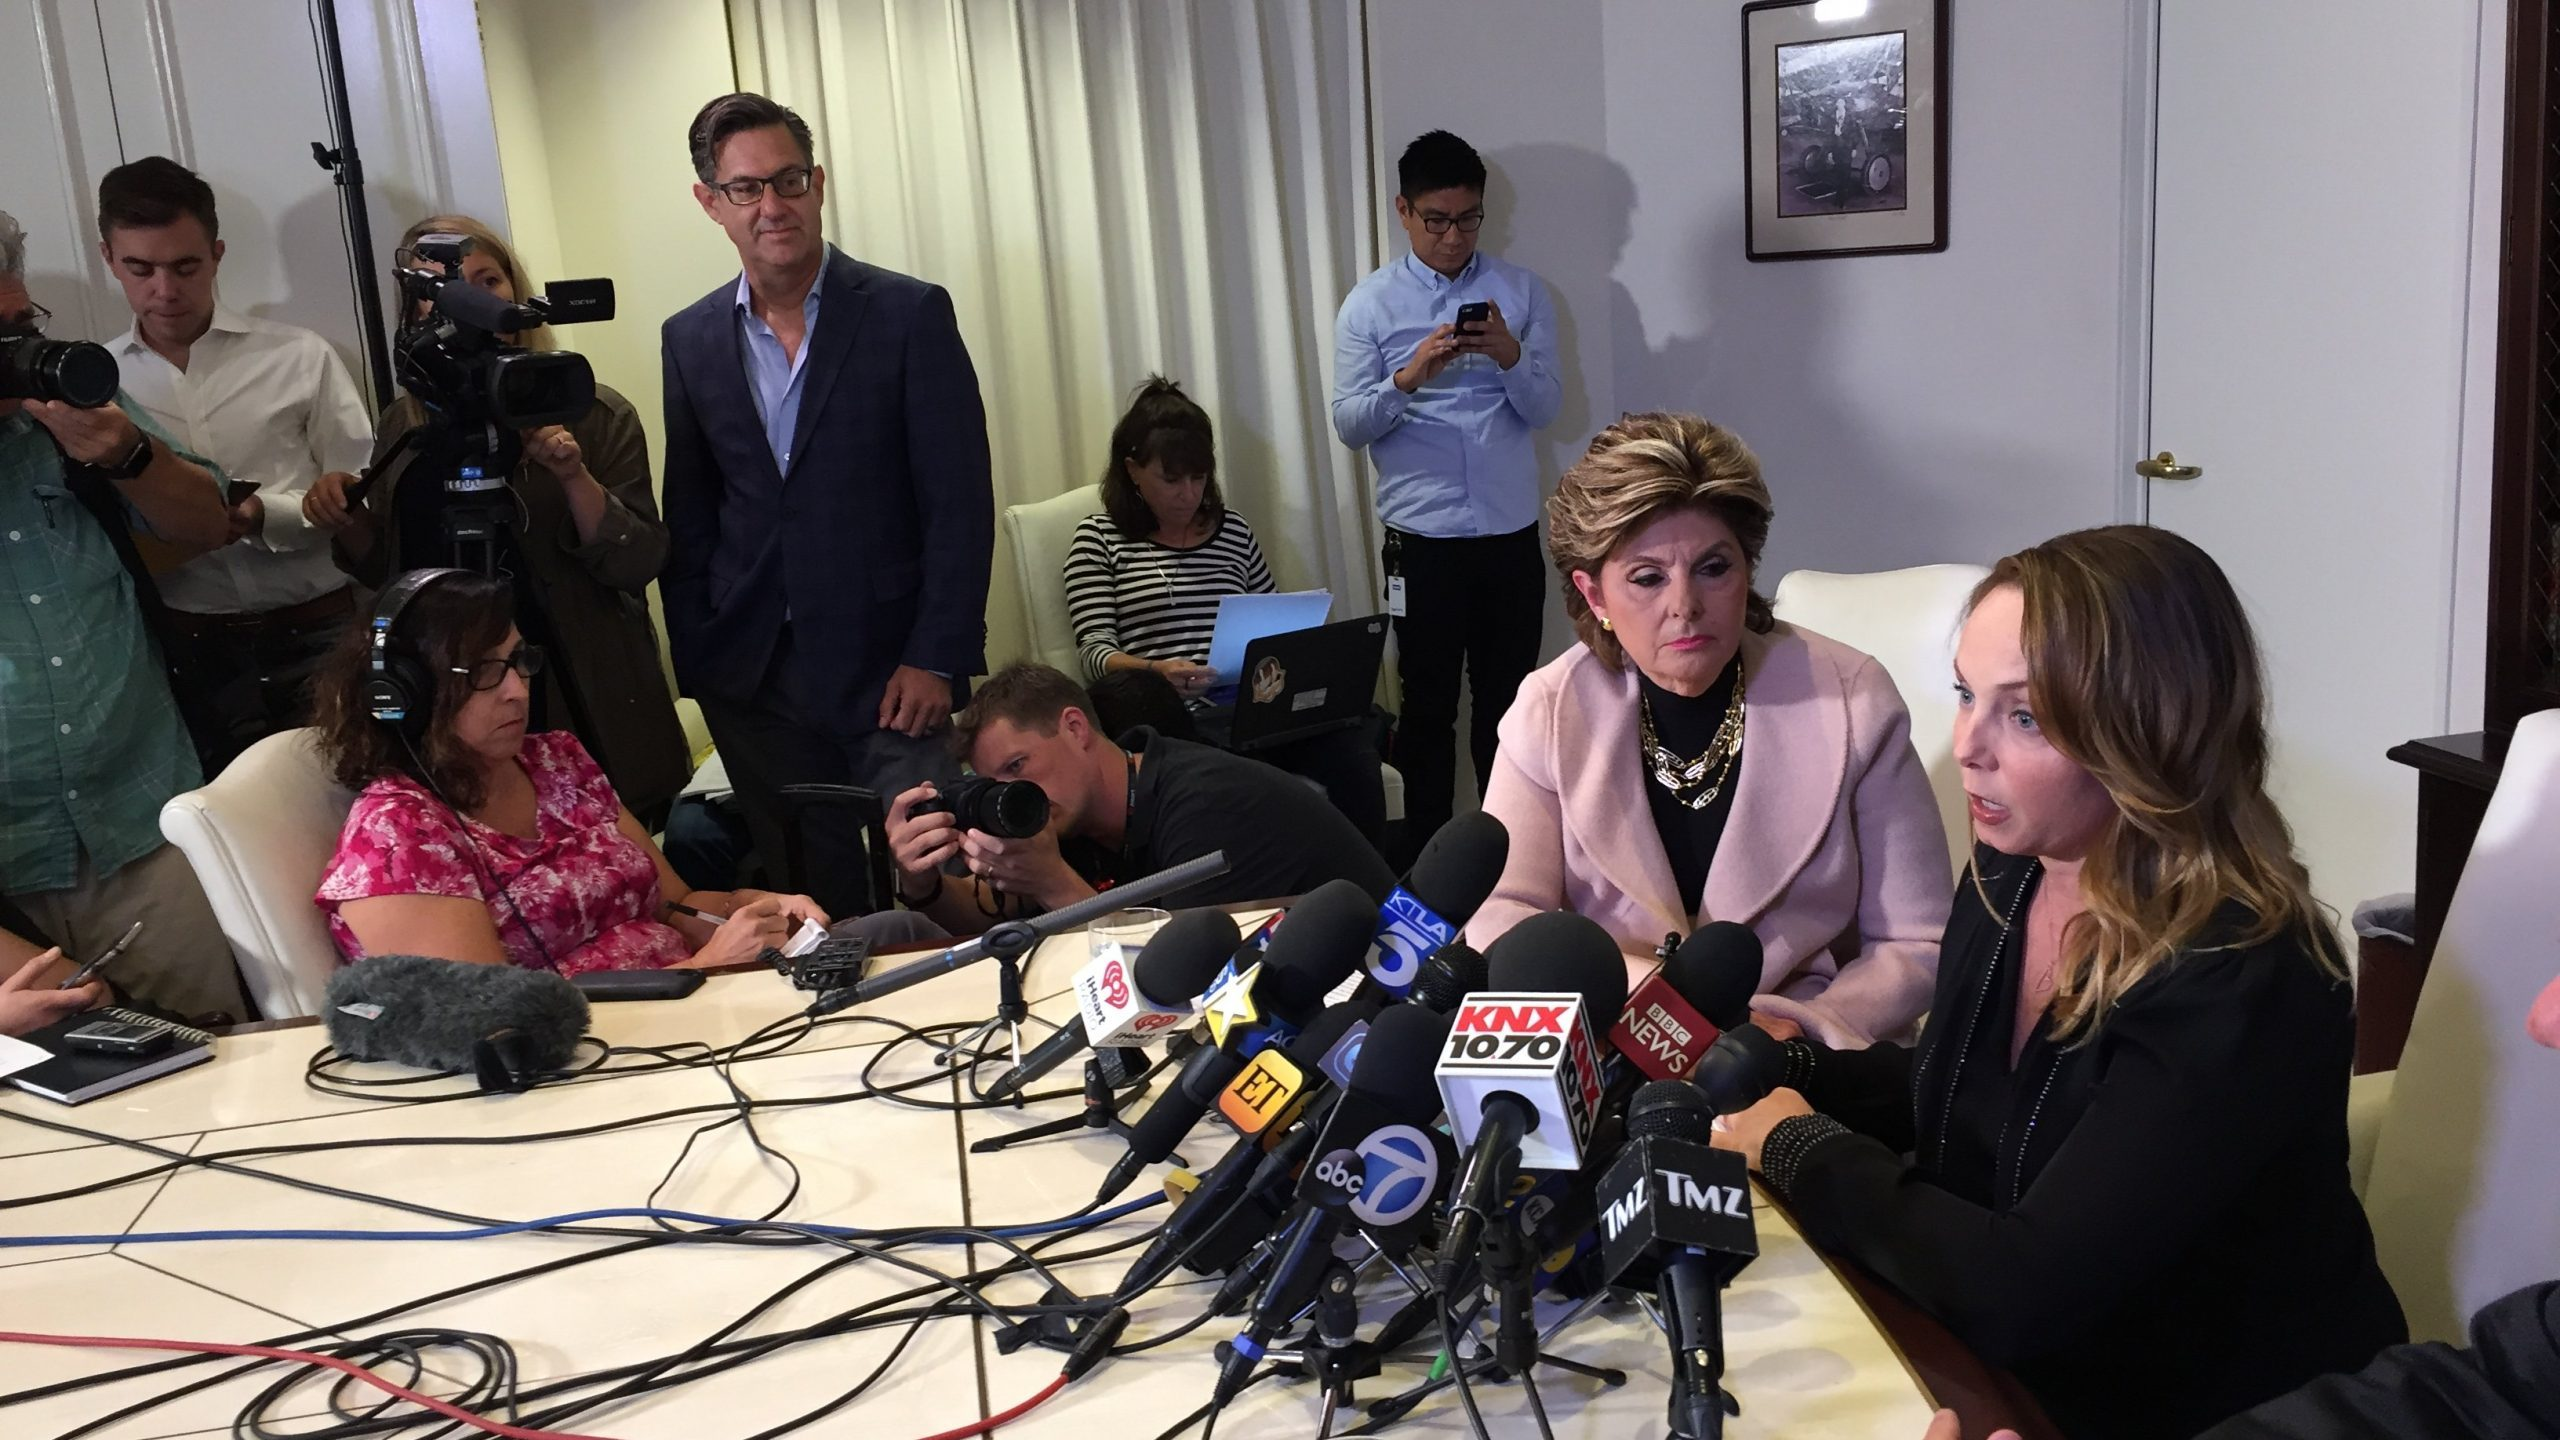 Former actress and screenwriter Louisette Geiss speaks at a press conference with lawyer Gloria Allred on Oct. 10, 2017, in Los Angeles. (Credit: JAVIER TOVAR/AFP via Getty Images)